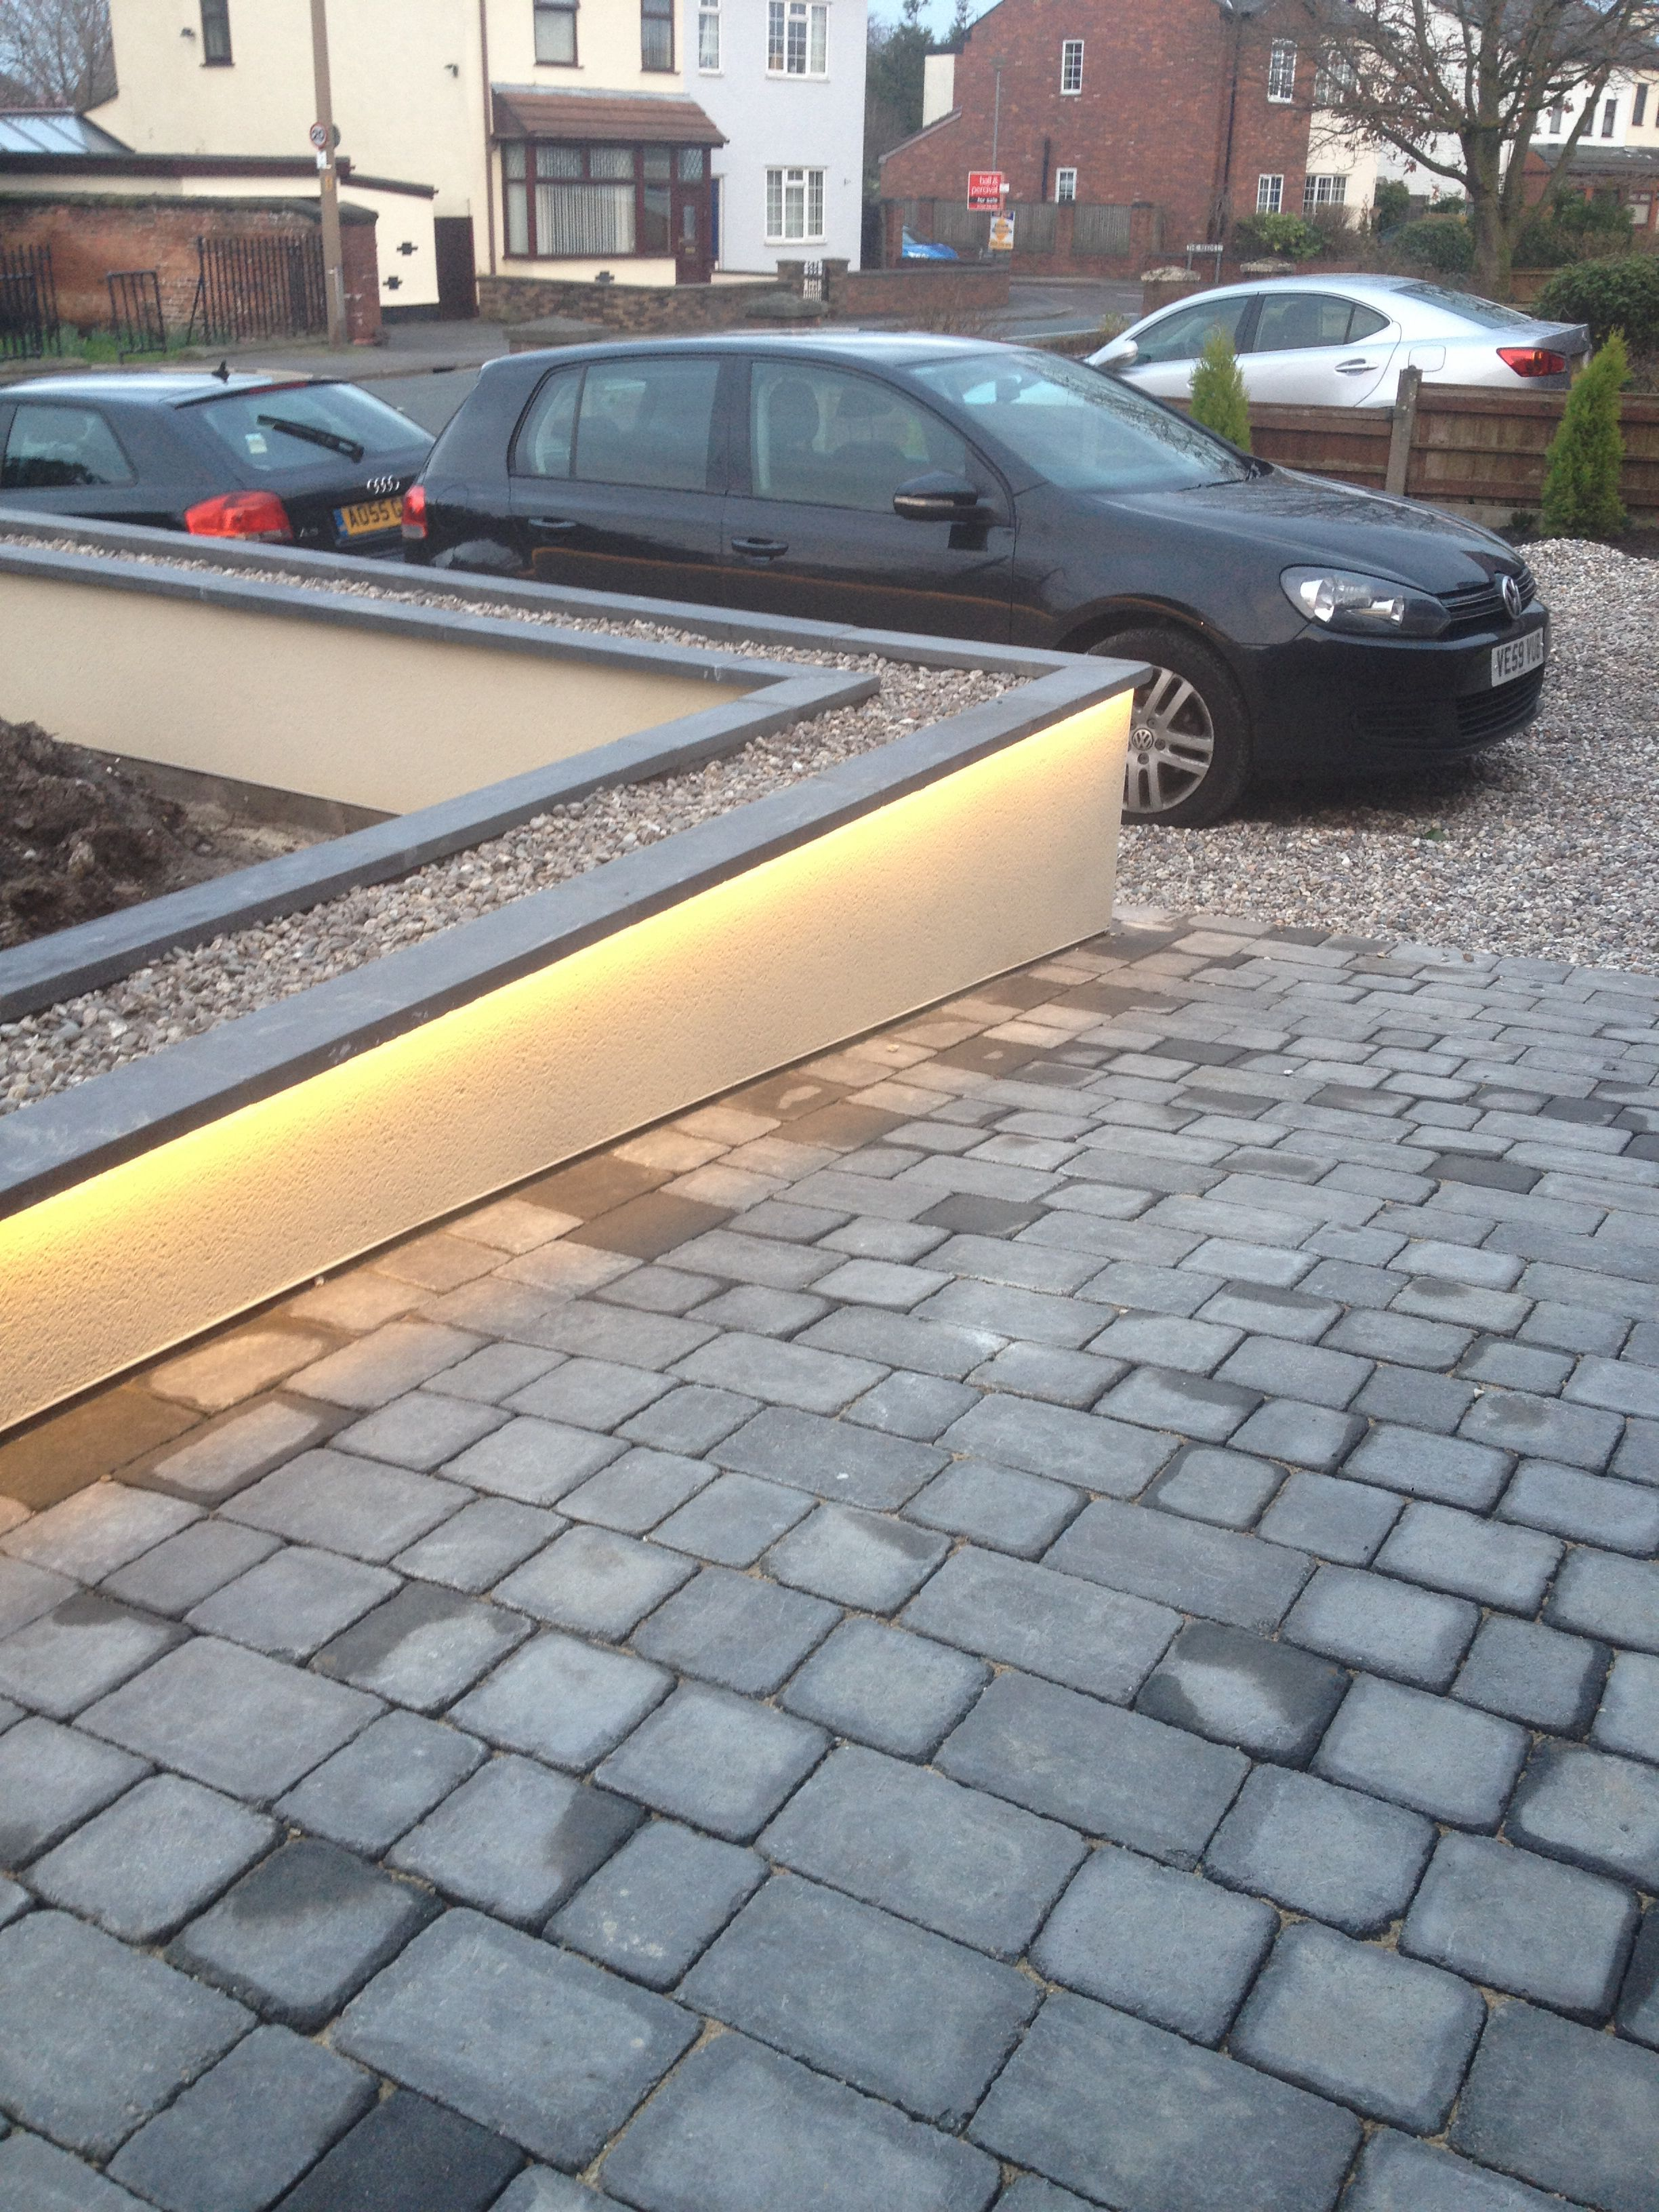 Hidden Led Strip Lights In The Coping Stones Lights The